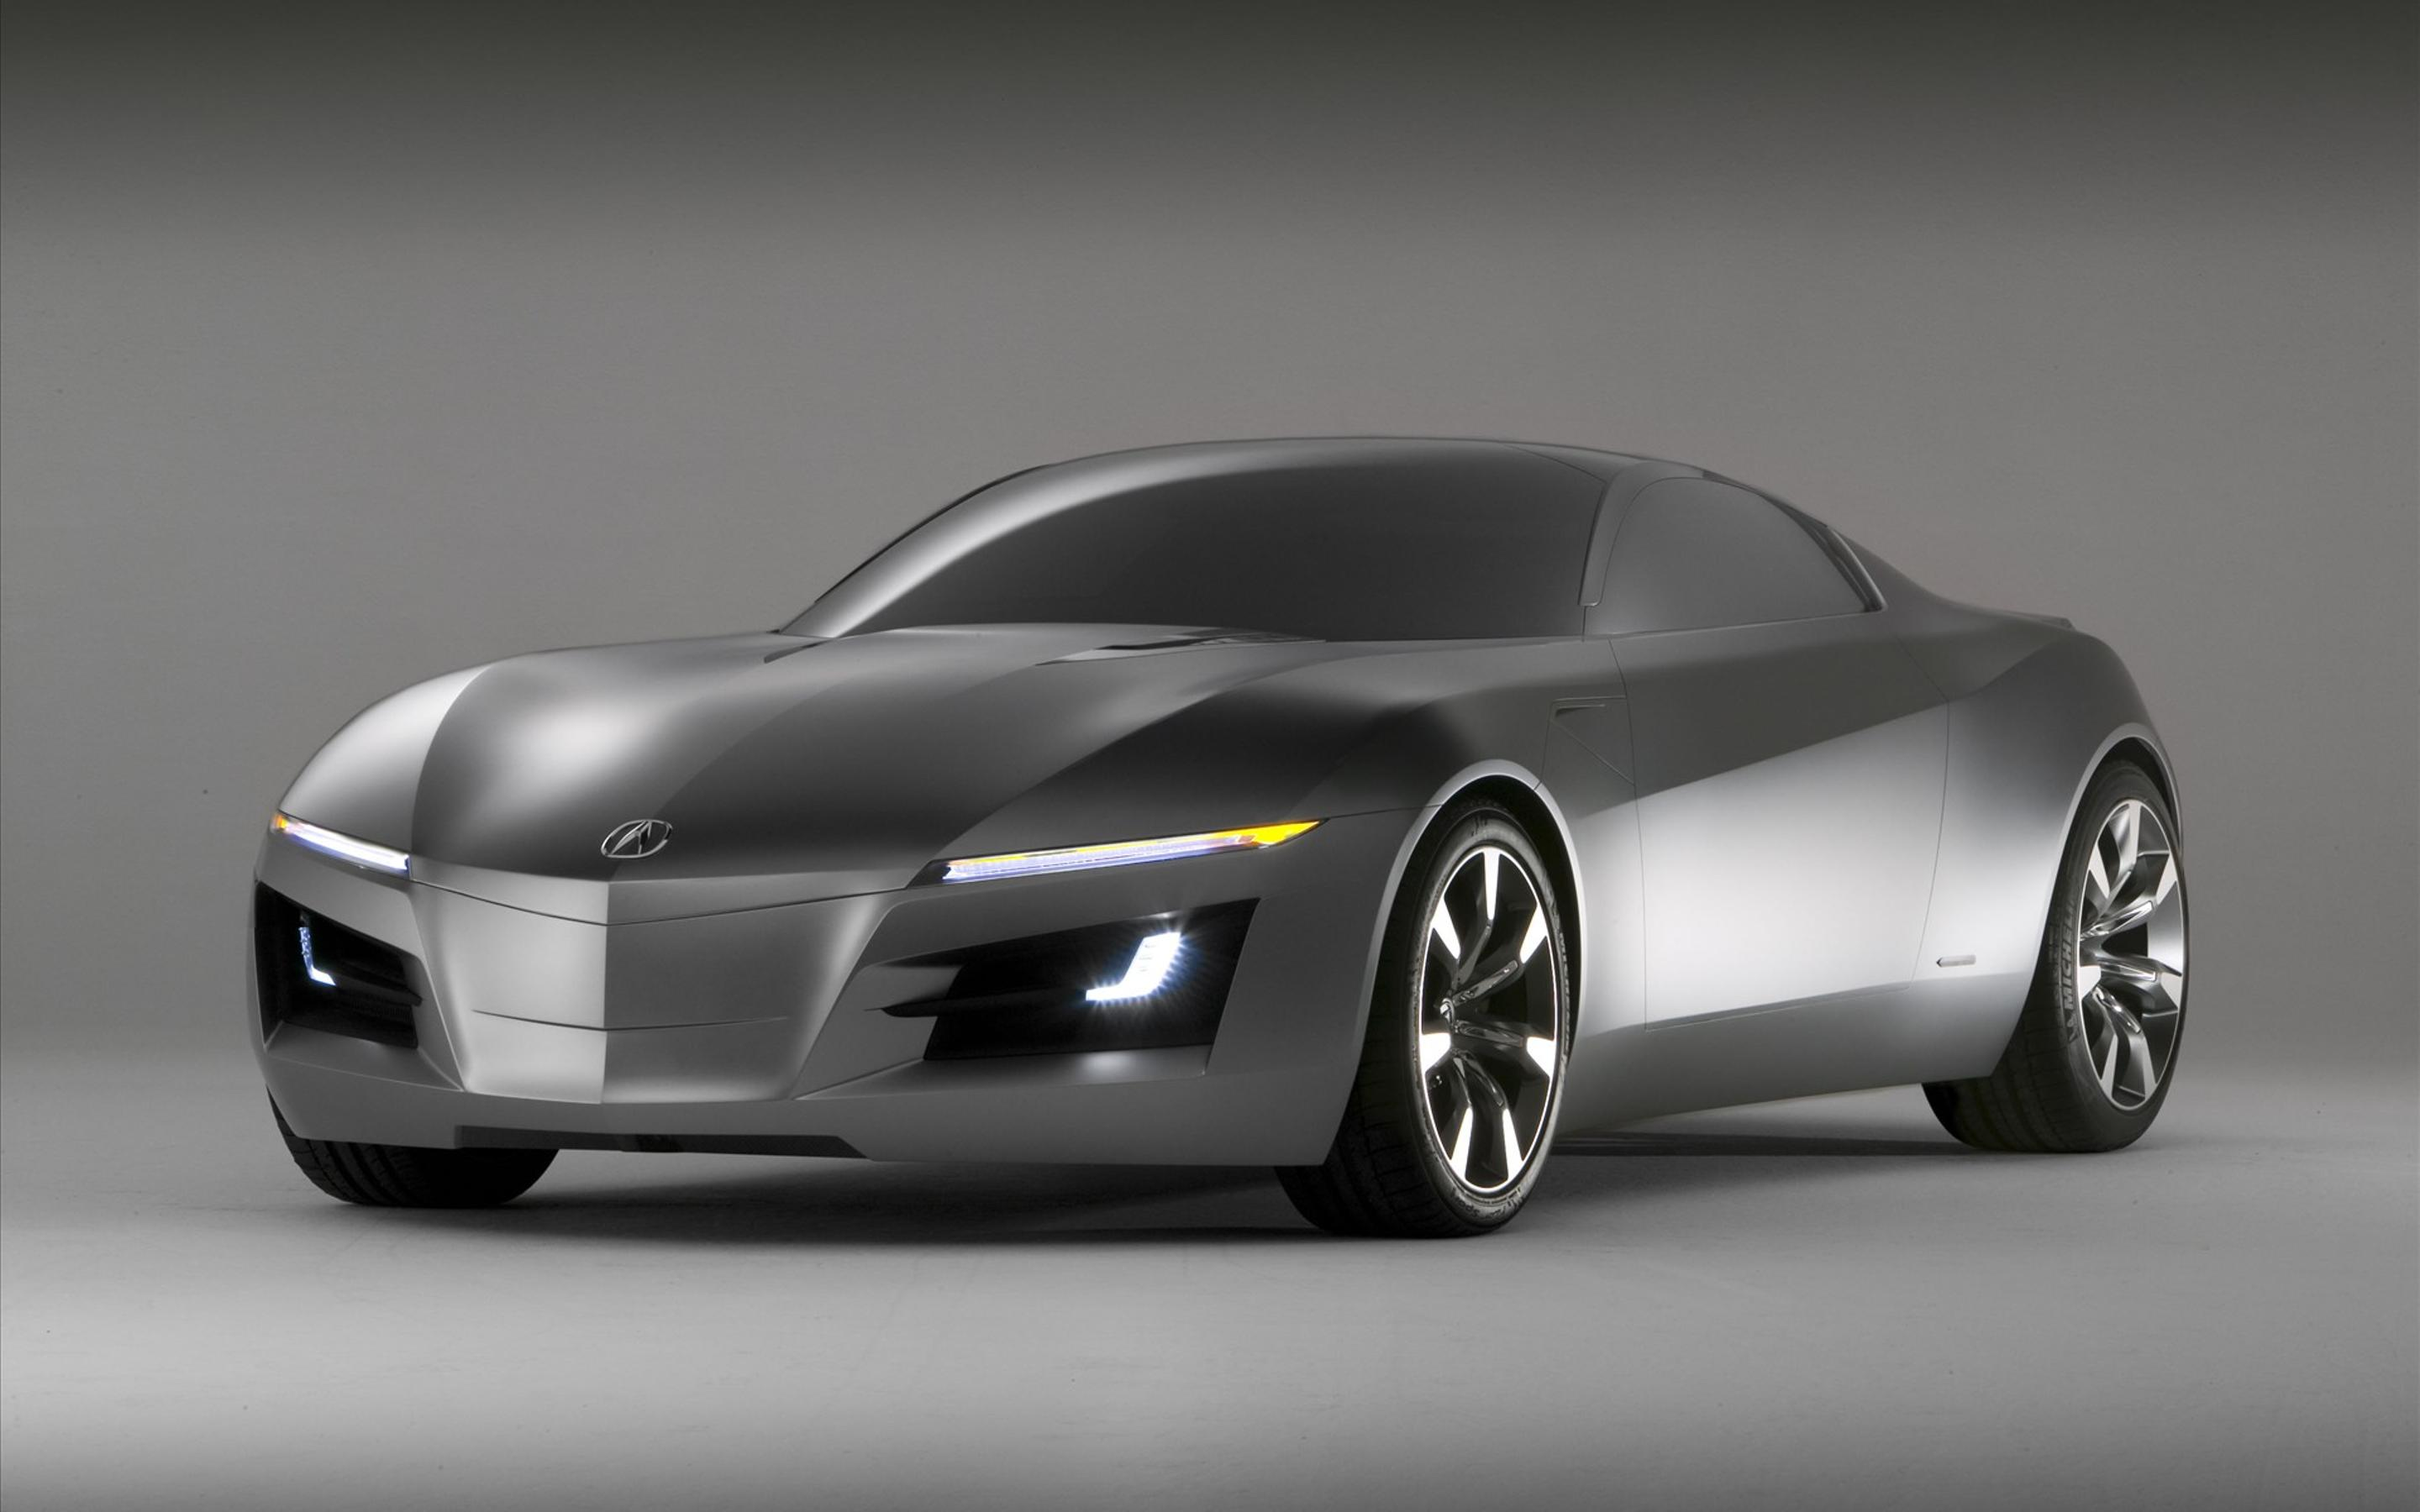 Gray Acura Sports Car Wallpaper Download 2880x1800